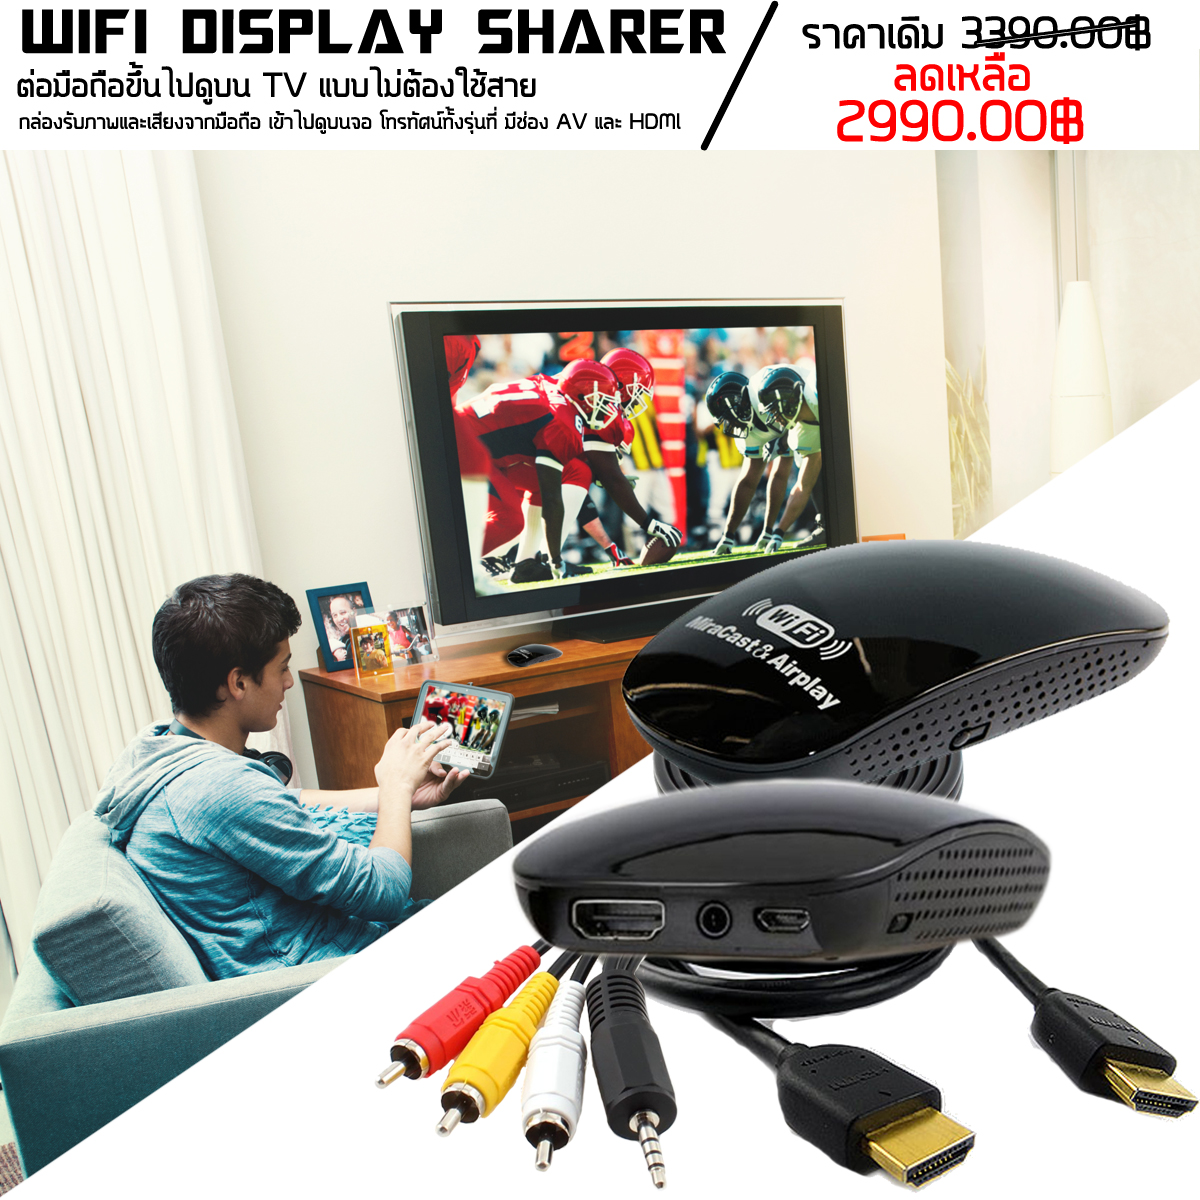 WIFI DISPLAY SHARER IN HOME